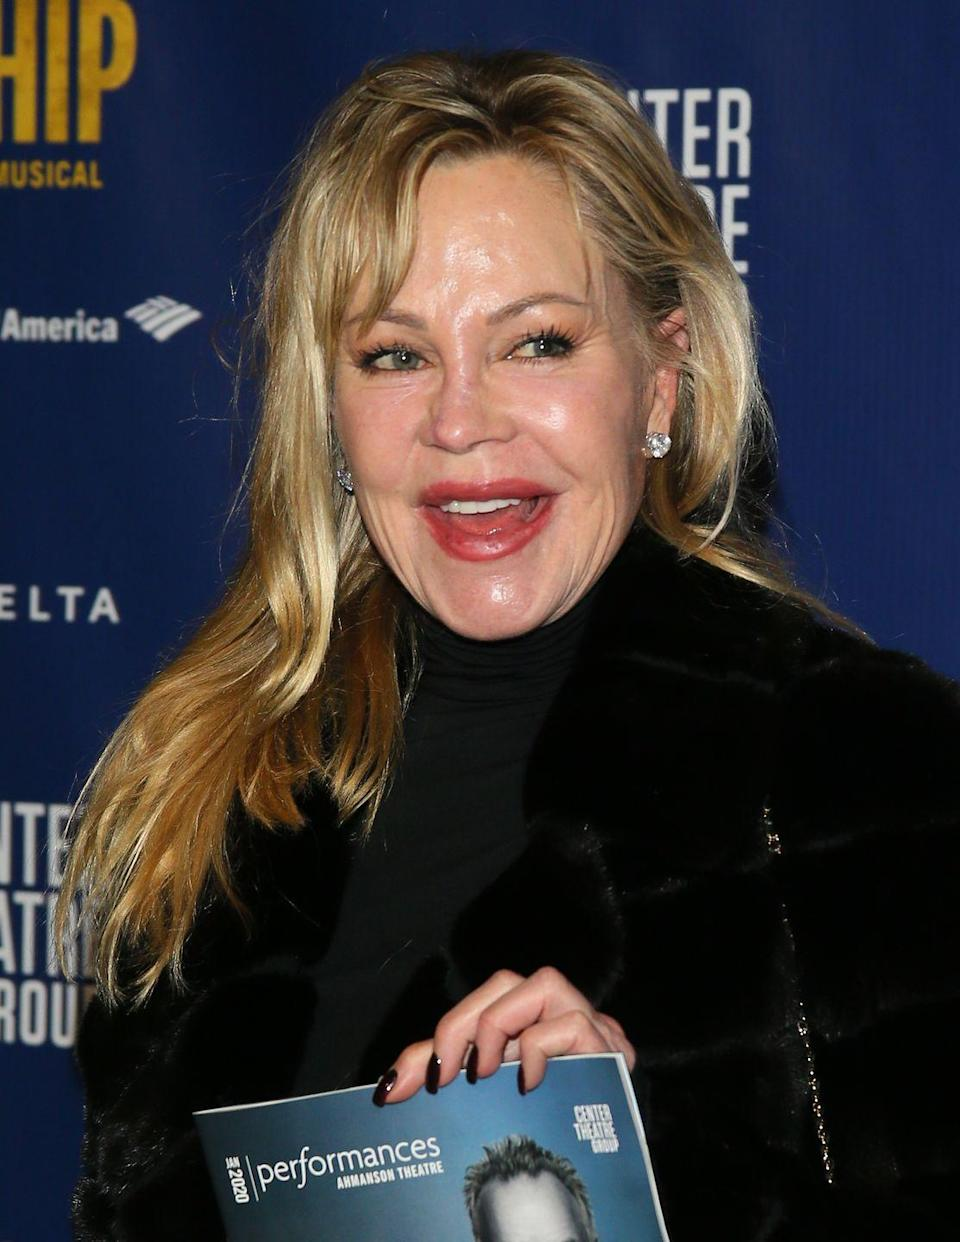 "<p>Melanie Griffith didn't know how addicted she had become to plastic surgery until ""people started saying, 'Oh my God, what has she done?!'"" <a href=""https://www.vanityfair.com/style/2017/04/melanie-griffith-plastic-surgery-addiction-warren-beatty"" rel=""nofollow noopener"" target=""_blank"" data-ylk=""slk:she said"" class=""link rapid-noclick-resp"">she said</a>. ""I was so hurt I went to a different doctor and he started dissolving all of this shit that this other woman doctor had put in. Hopefully, I look more normal now.""</p>"